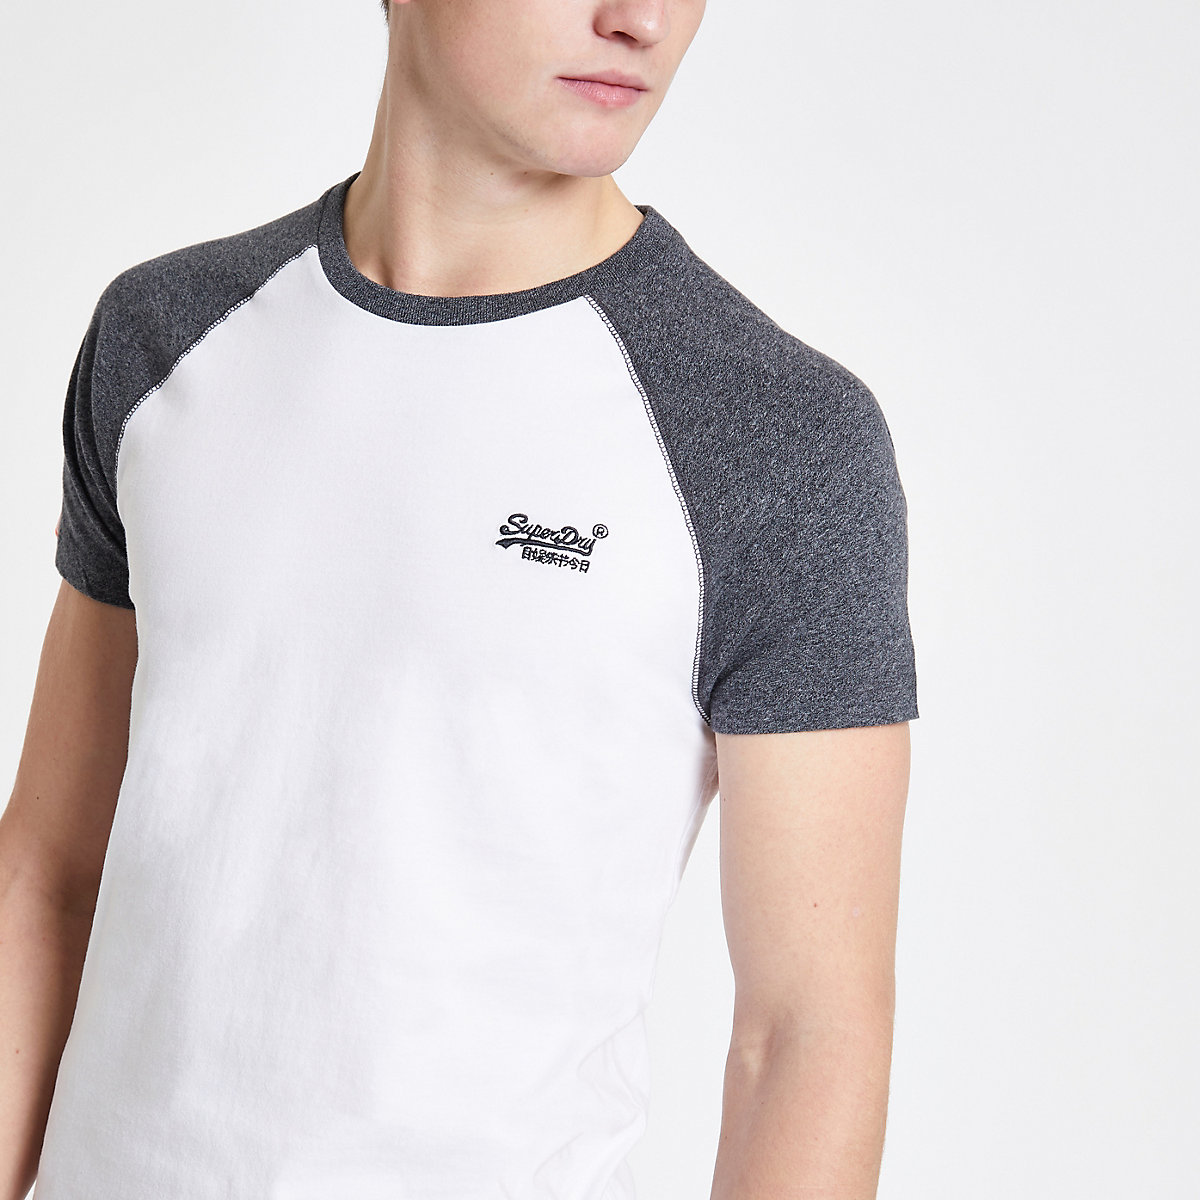 Superdry grey raglan T-shirt